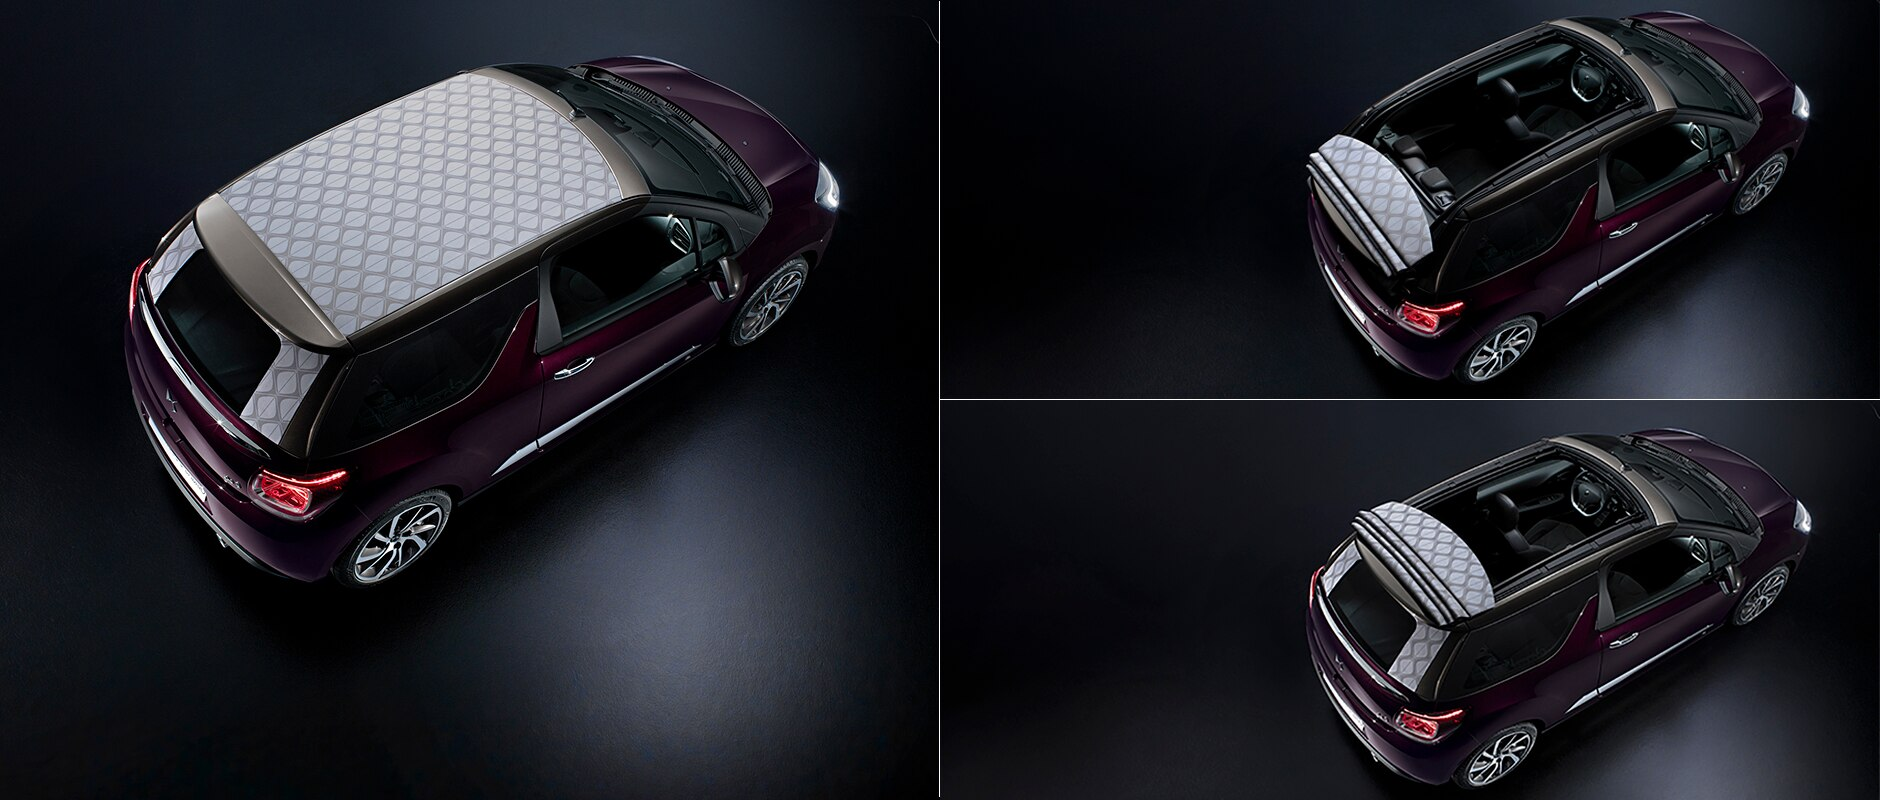 DS3_Cabrio-detail-Perso